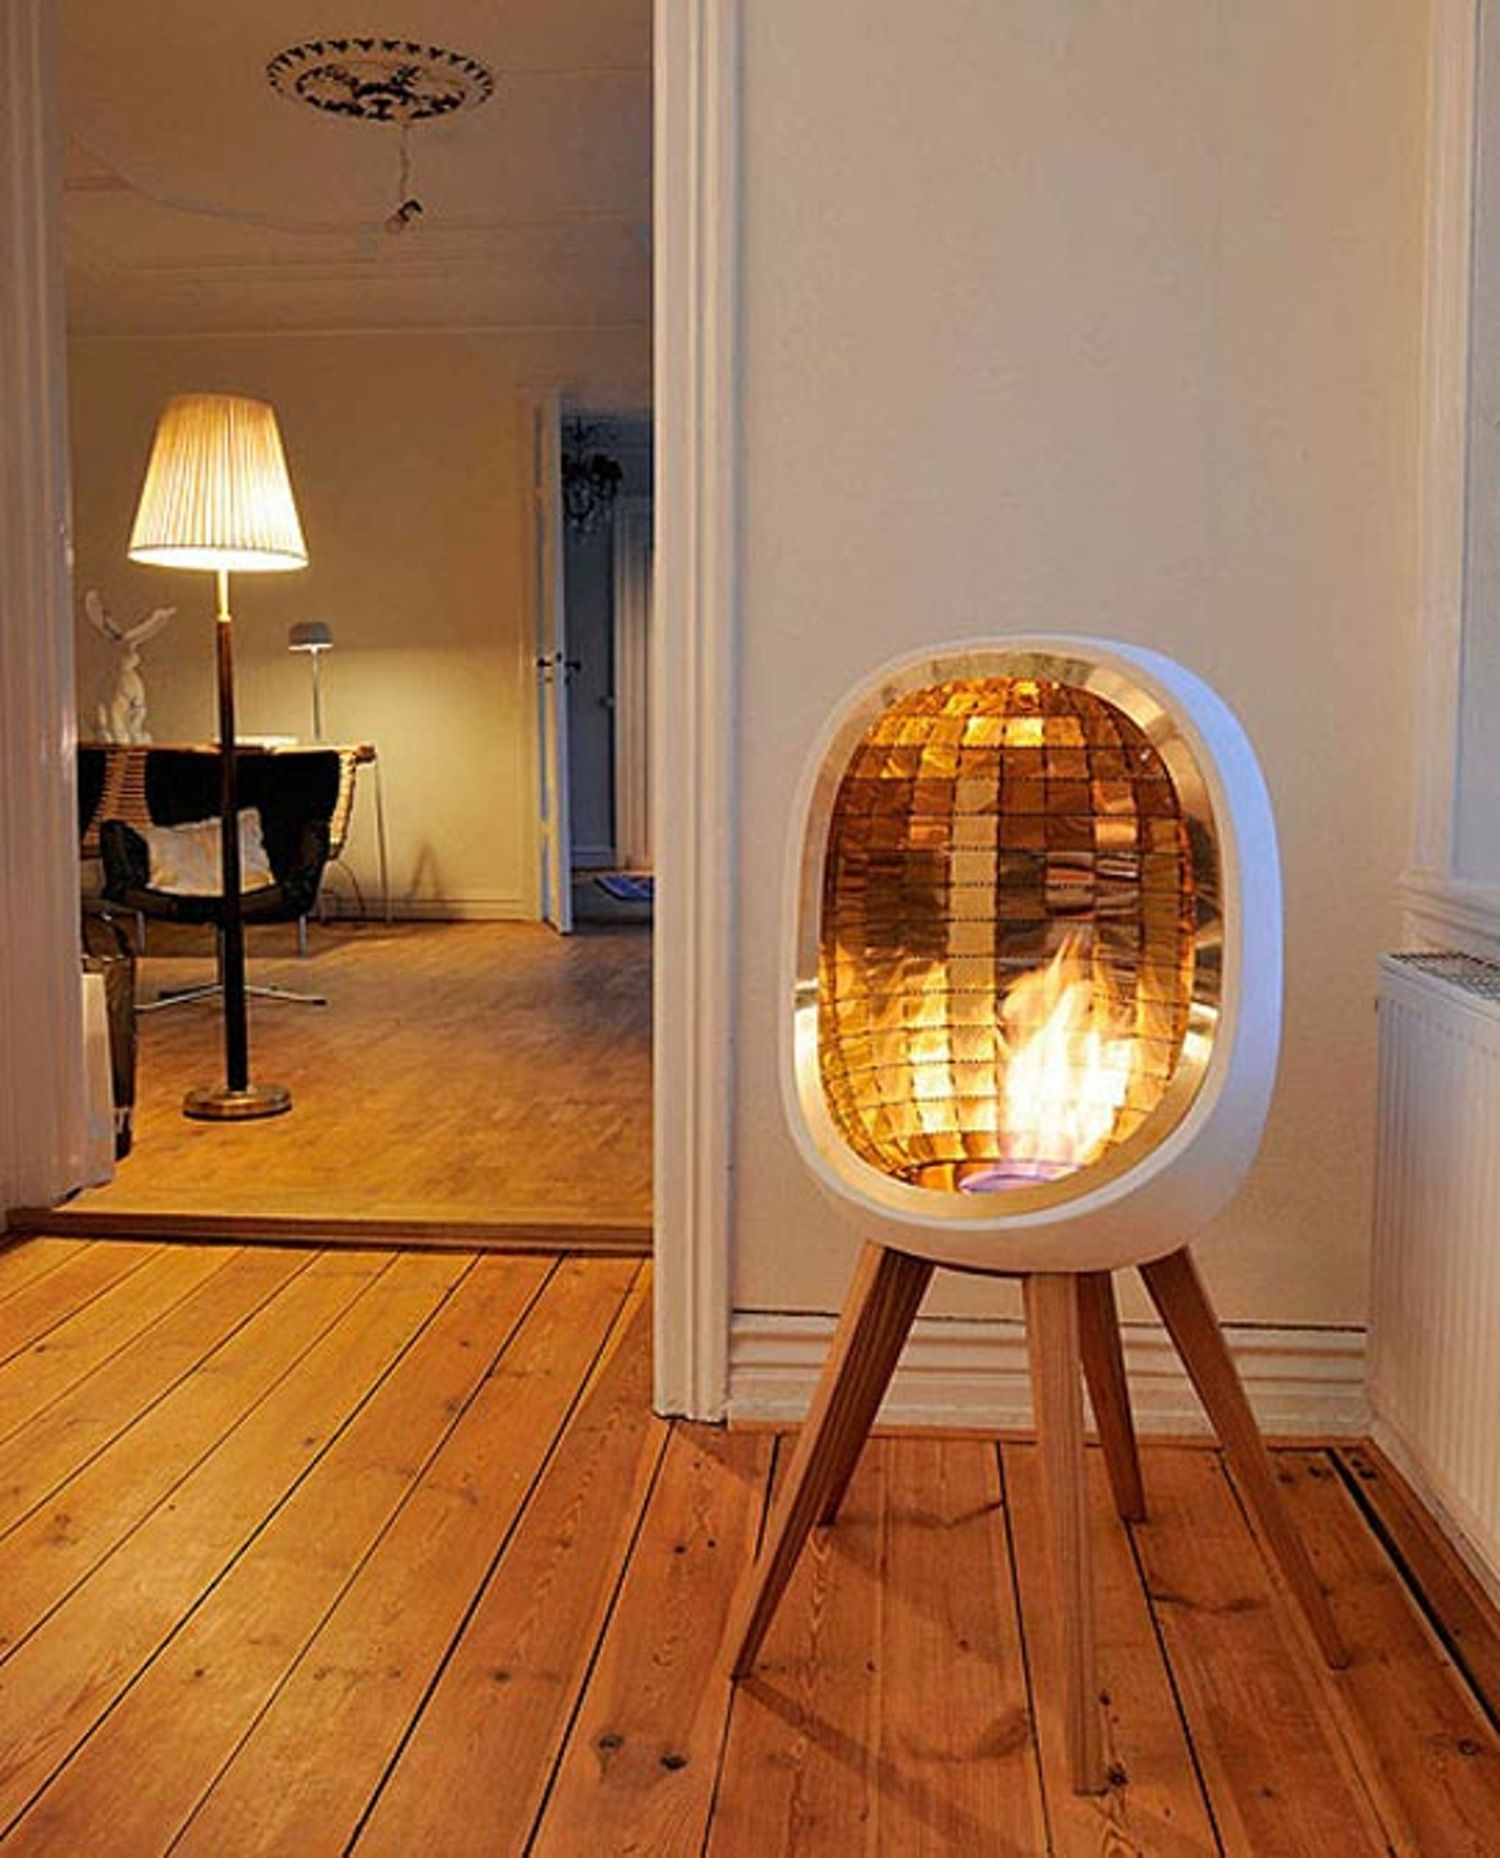 Cheminee Ethanol Design Bois Incredible Piet Indoor Stove Will Enable New Layouts Fireplaces